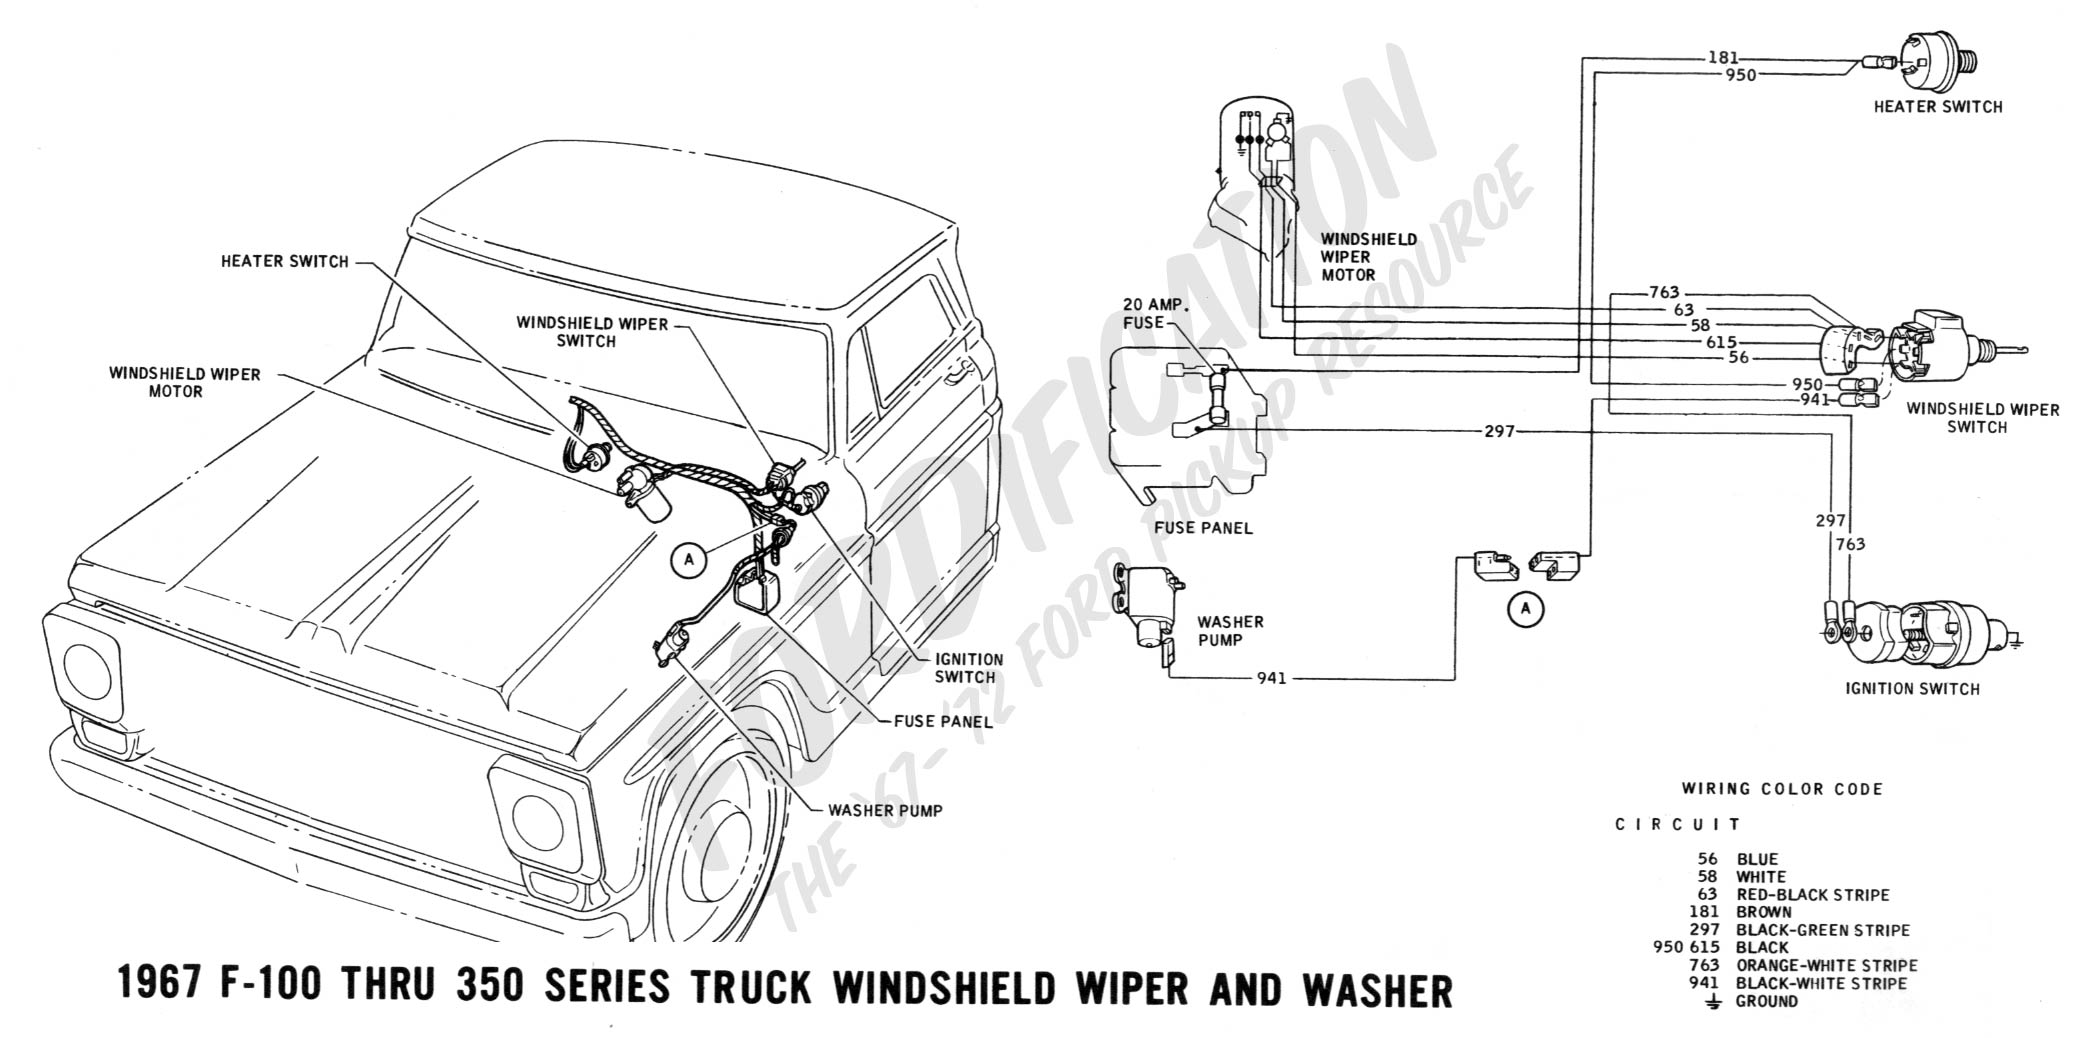 Wiring Diagram 86 87 85 30 Relay in addition 1029056 6 9 7 3 Idi Diesel Tech Info 4 in addition 2qf  Fuse Box Diagram 2002 Ford F 150 together with Schematics h moreover 3 5 V 6 Vin H Firing Order. on 02 f150 ignition wiring diagram